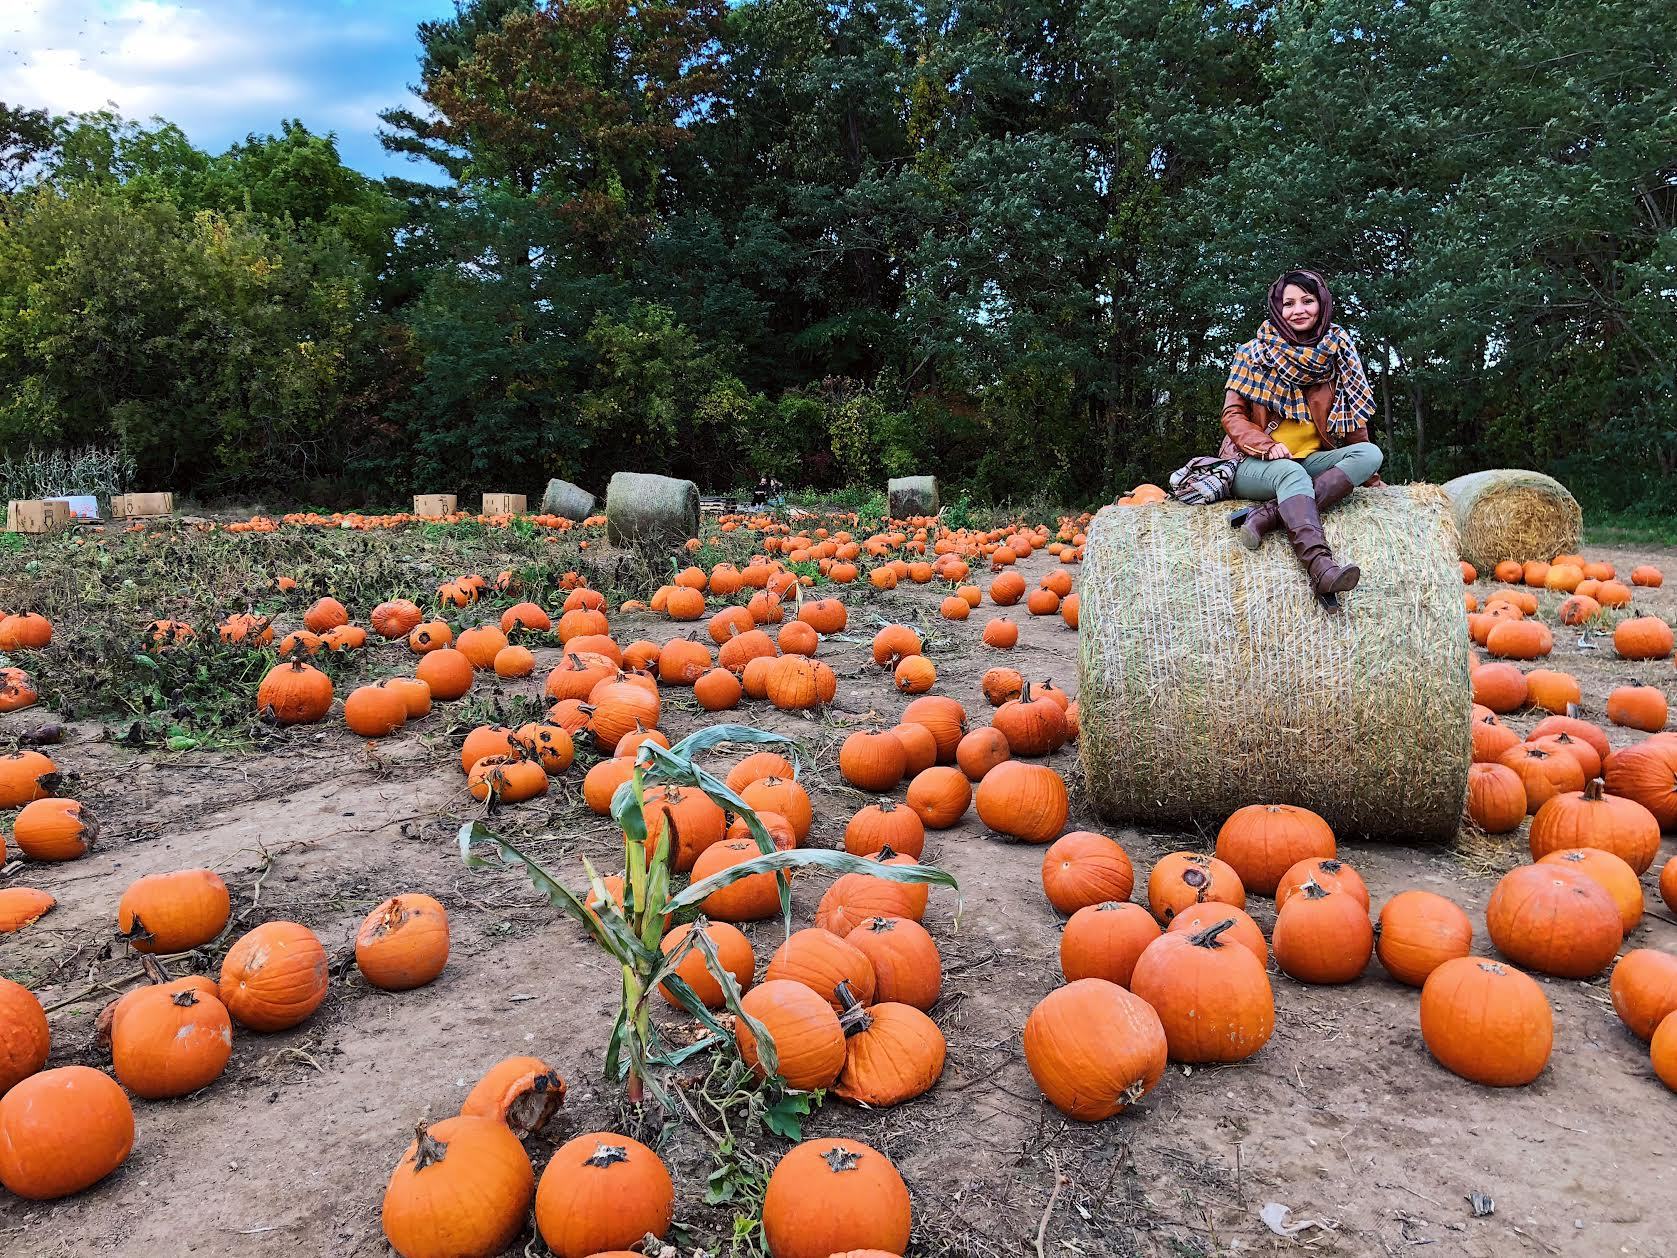 Muslim-travel-New-England-fall-activities-pumpkin-patch-visit